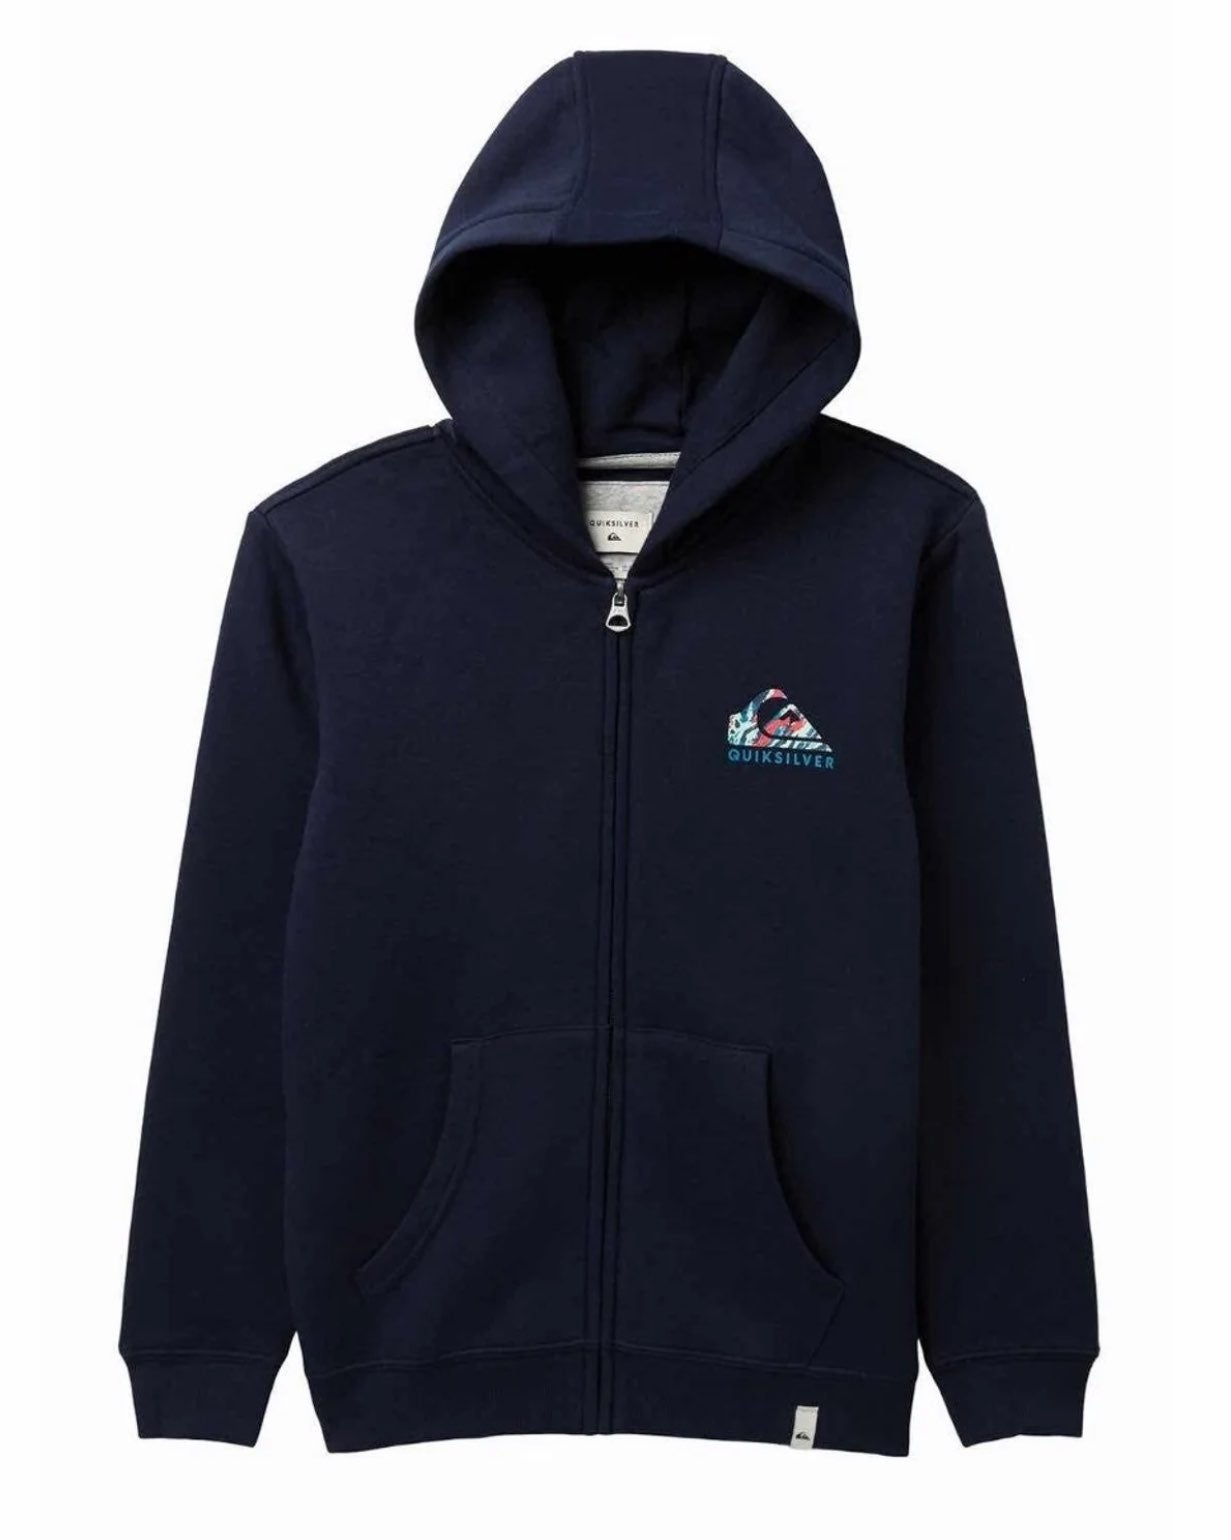 Quiksilver Swell Vision Boys Hoodie